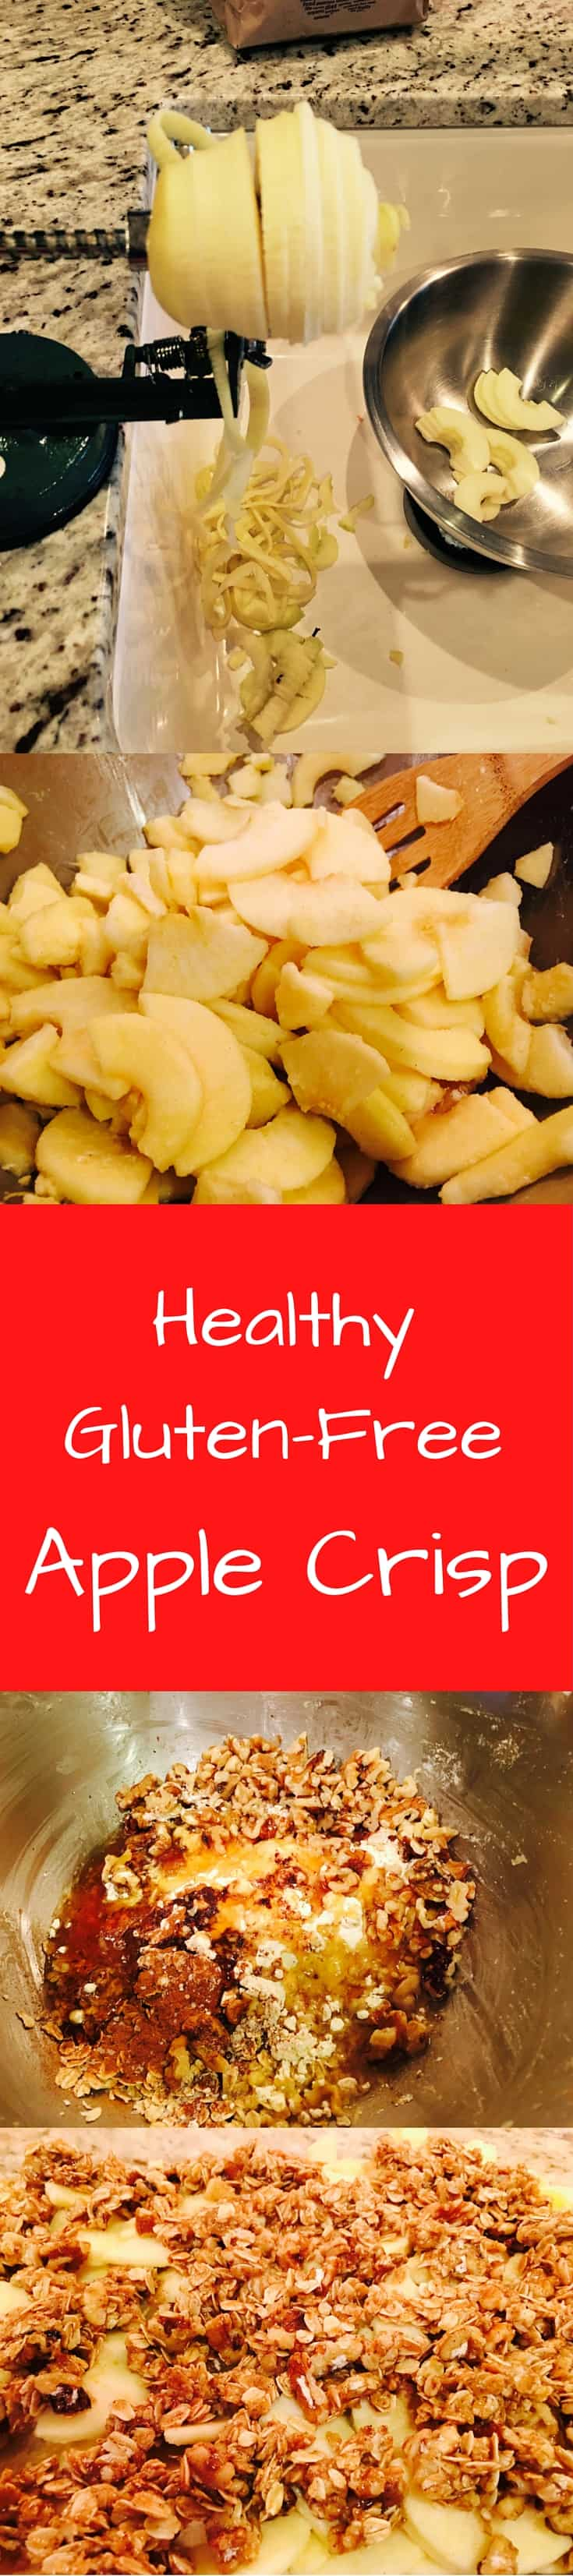 healthy gluten free apple crisp